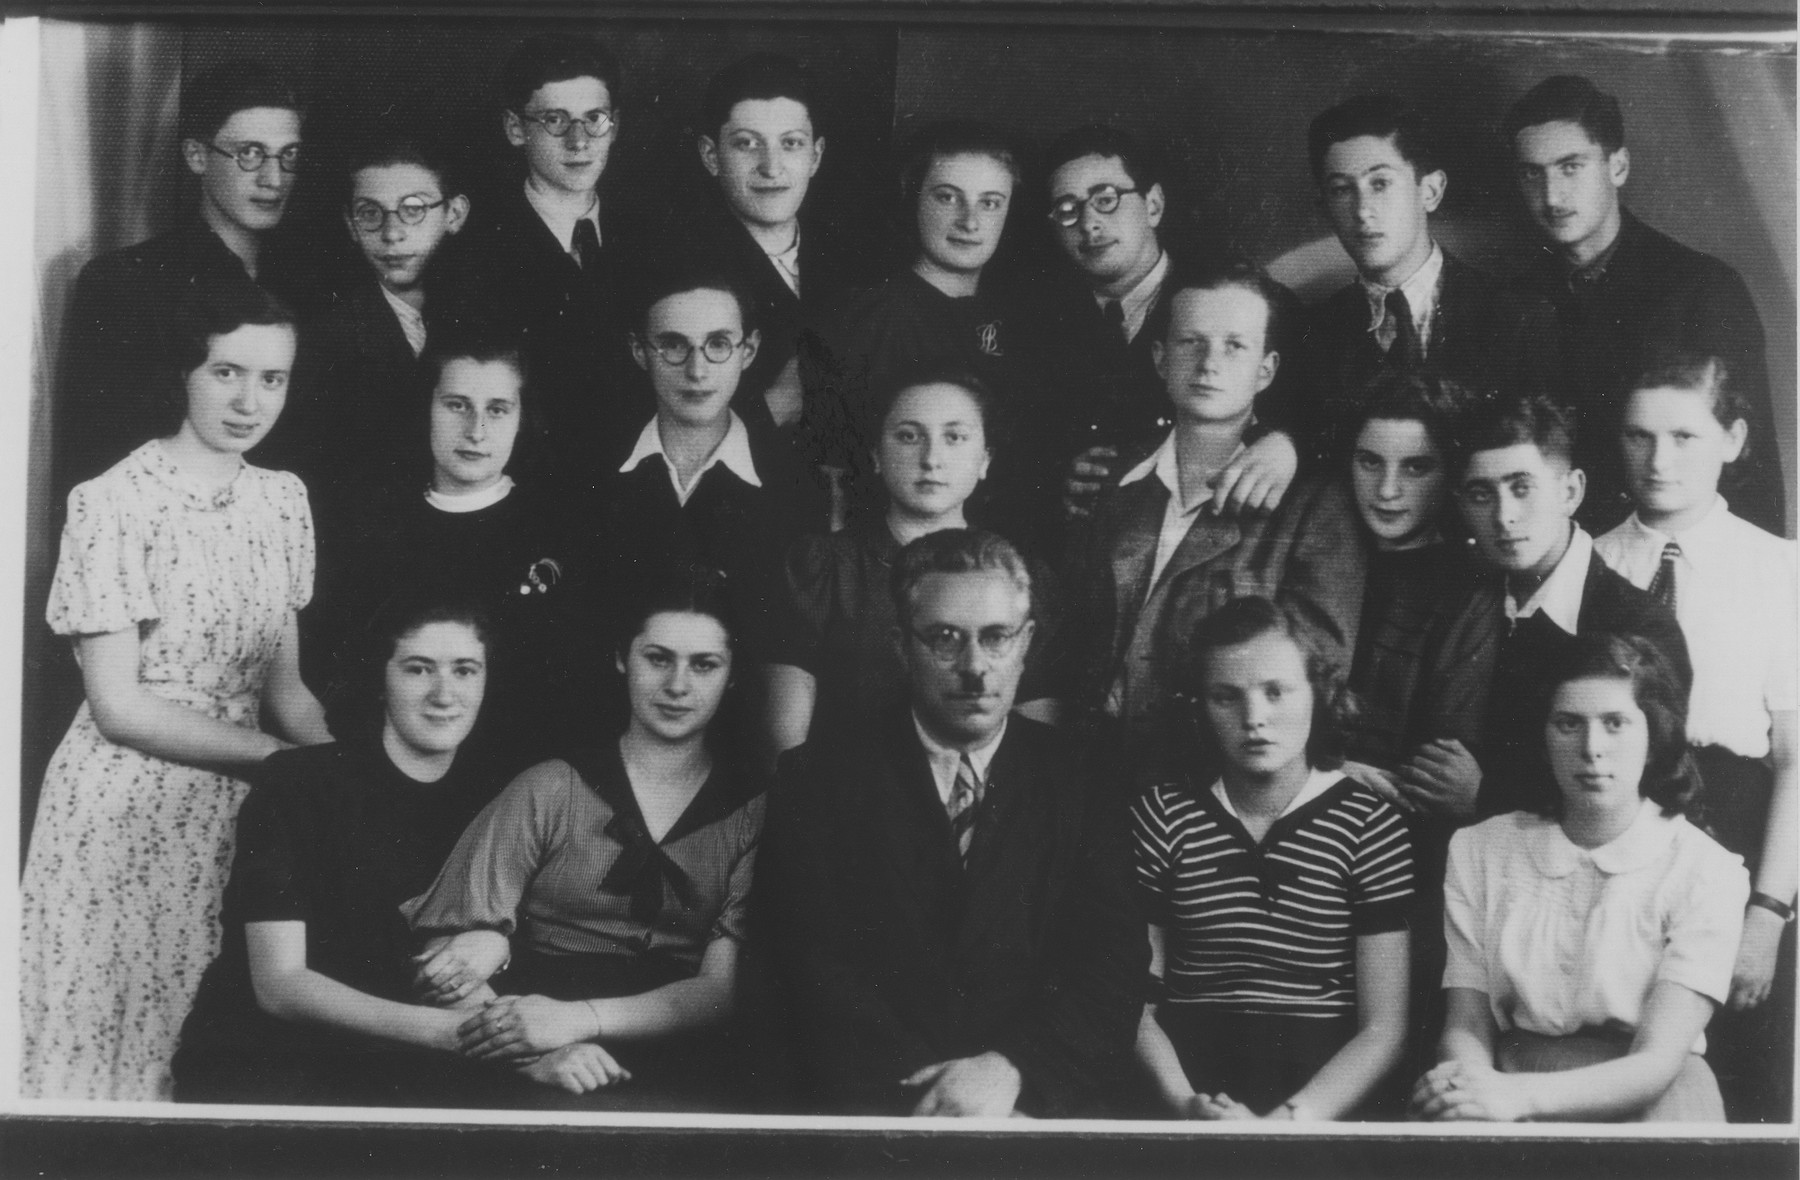 Prof. Elster poses with his students at the Furstenberg Gymnasium in Bedzin.  Seated in the front row, from left to right are: Lola Lustiger; Genia Szpigelman; Prof. Elster; Rozka Feder; Franka Grundman.  Second row: Renia Nunberg; Gucia Slowatycka; Mendek Rechnic; Sala Goldberg; Heniek Blumenfrucht; Bela Ehrlich; Izio Koenigsberg; Golda Grynberg. Third row: Izak Blumenkranc; Natek Buchner; Samek Zelinger; Zabner; Lola Brodkiewicz; Moniek Teitelbaum; unknown; and Jerzyk Mandelkern.